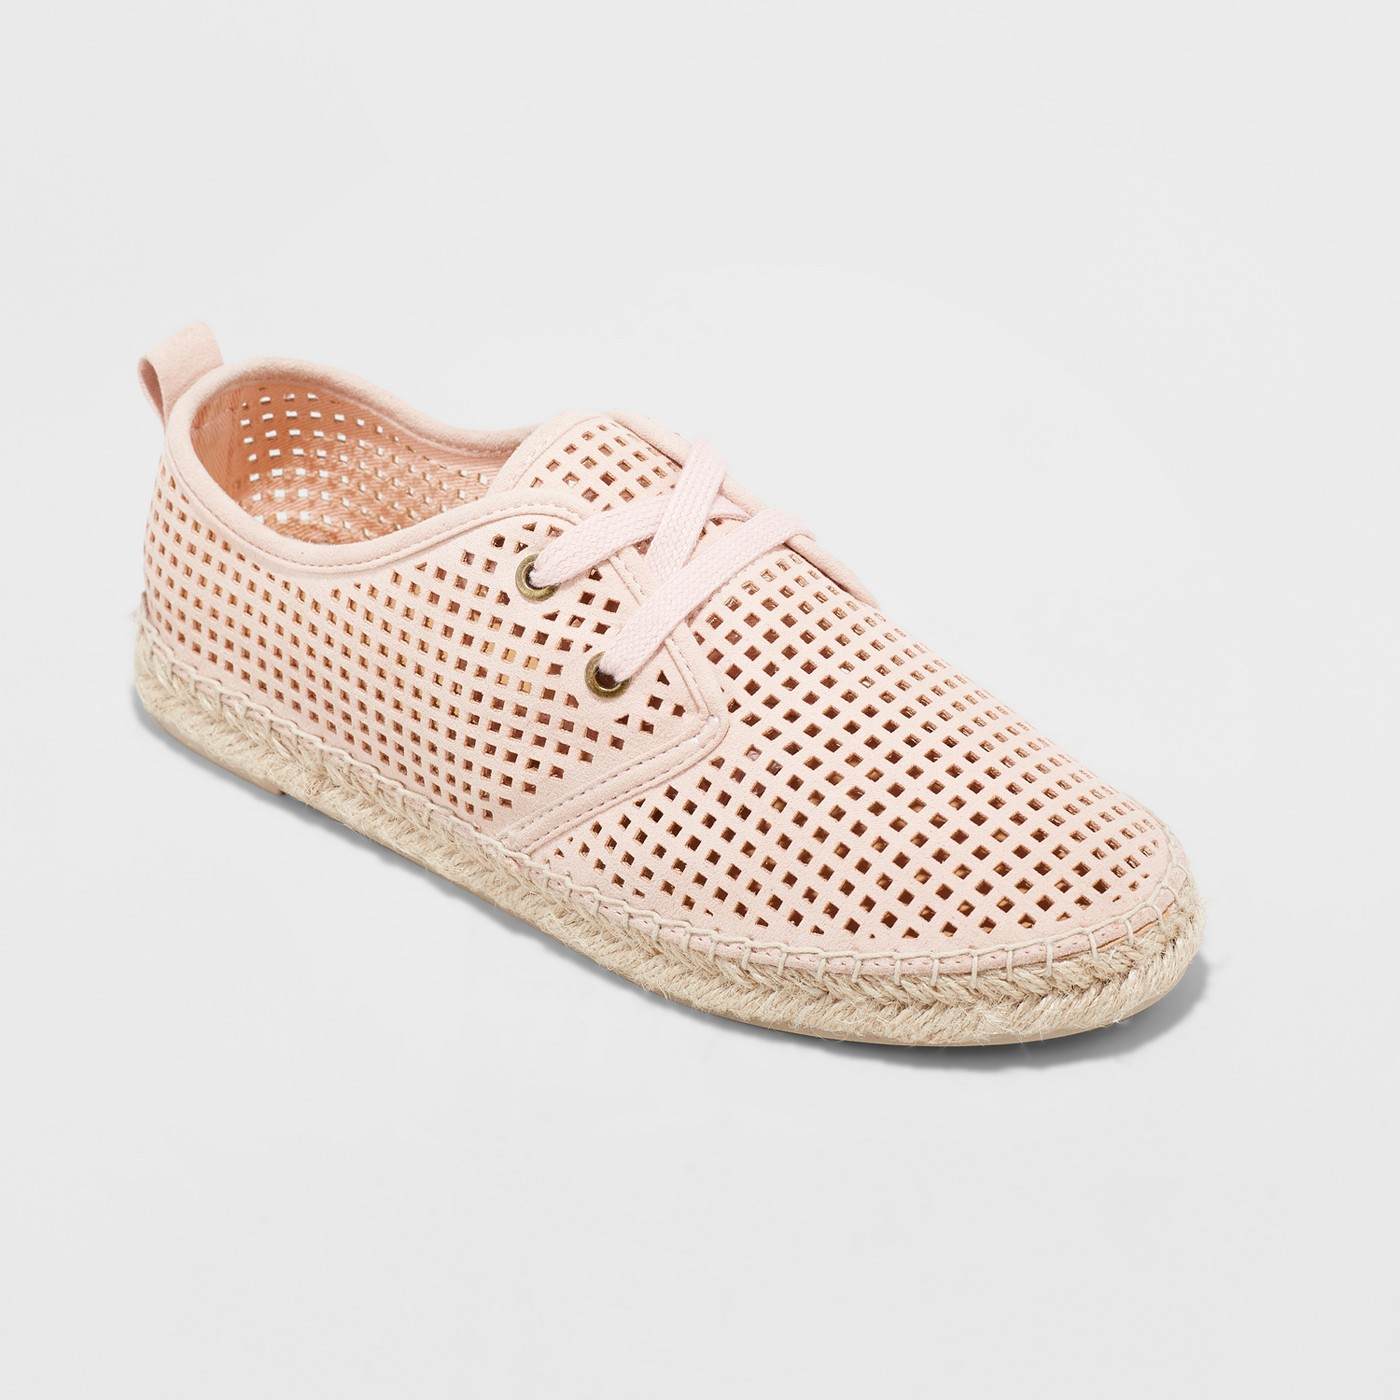 blush pink perforated sneaker espadrille spring shoes